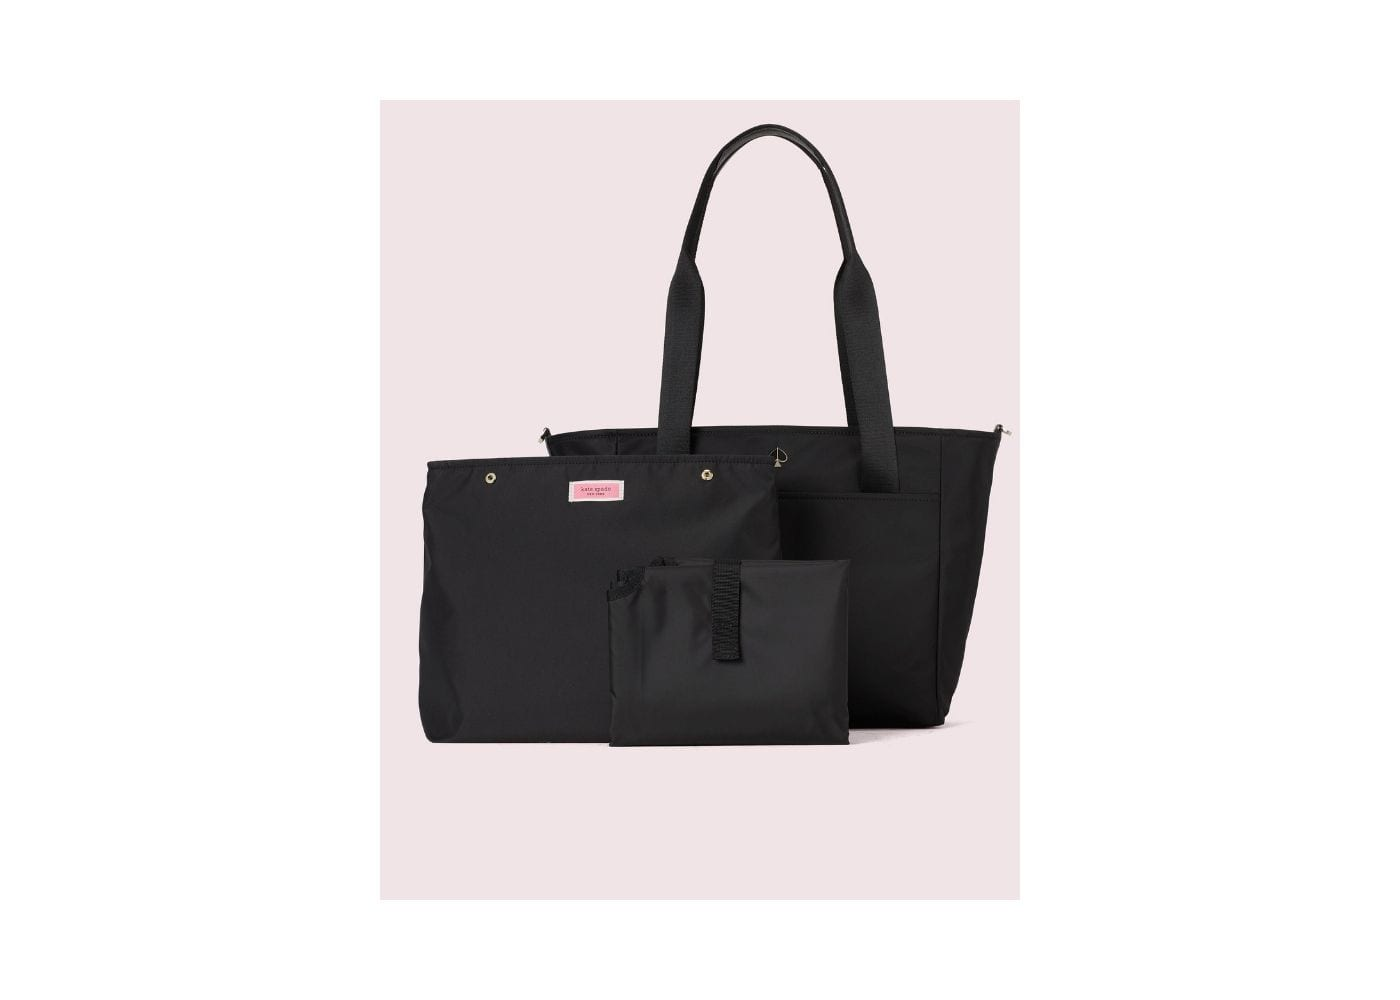 Stylish Diaper Bags: Kate Spade New York Taylor Tote